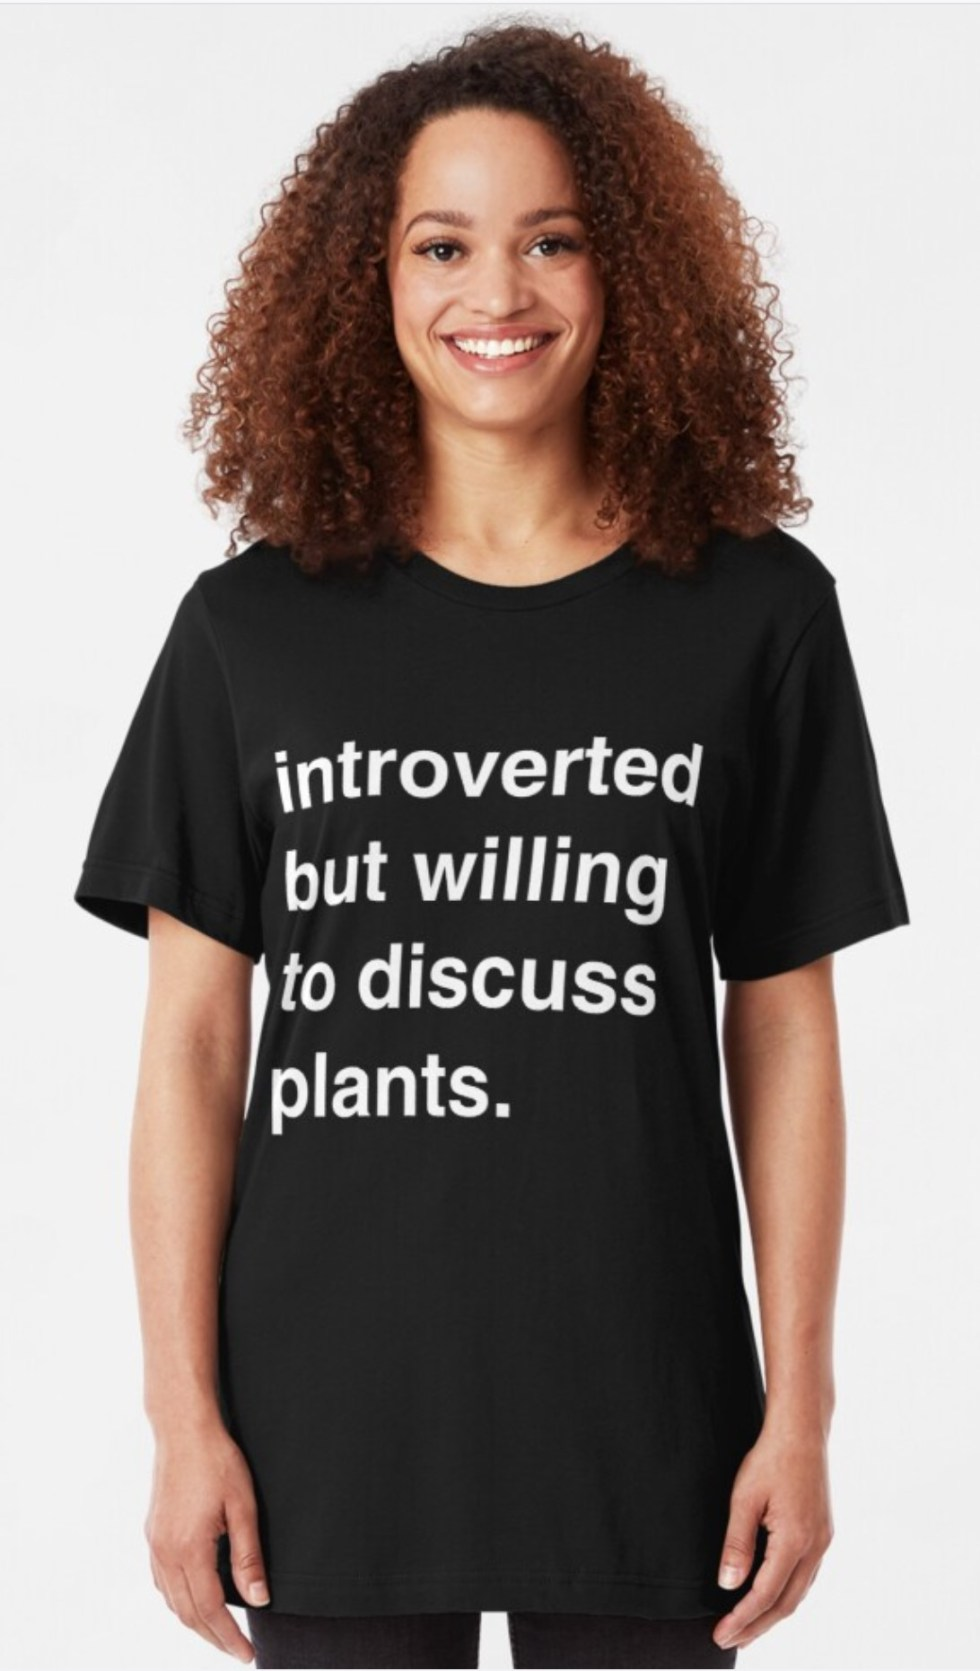 Introverted But Willing To Discuss Plants T-shirt